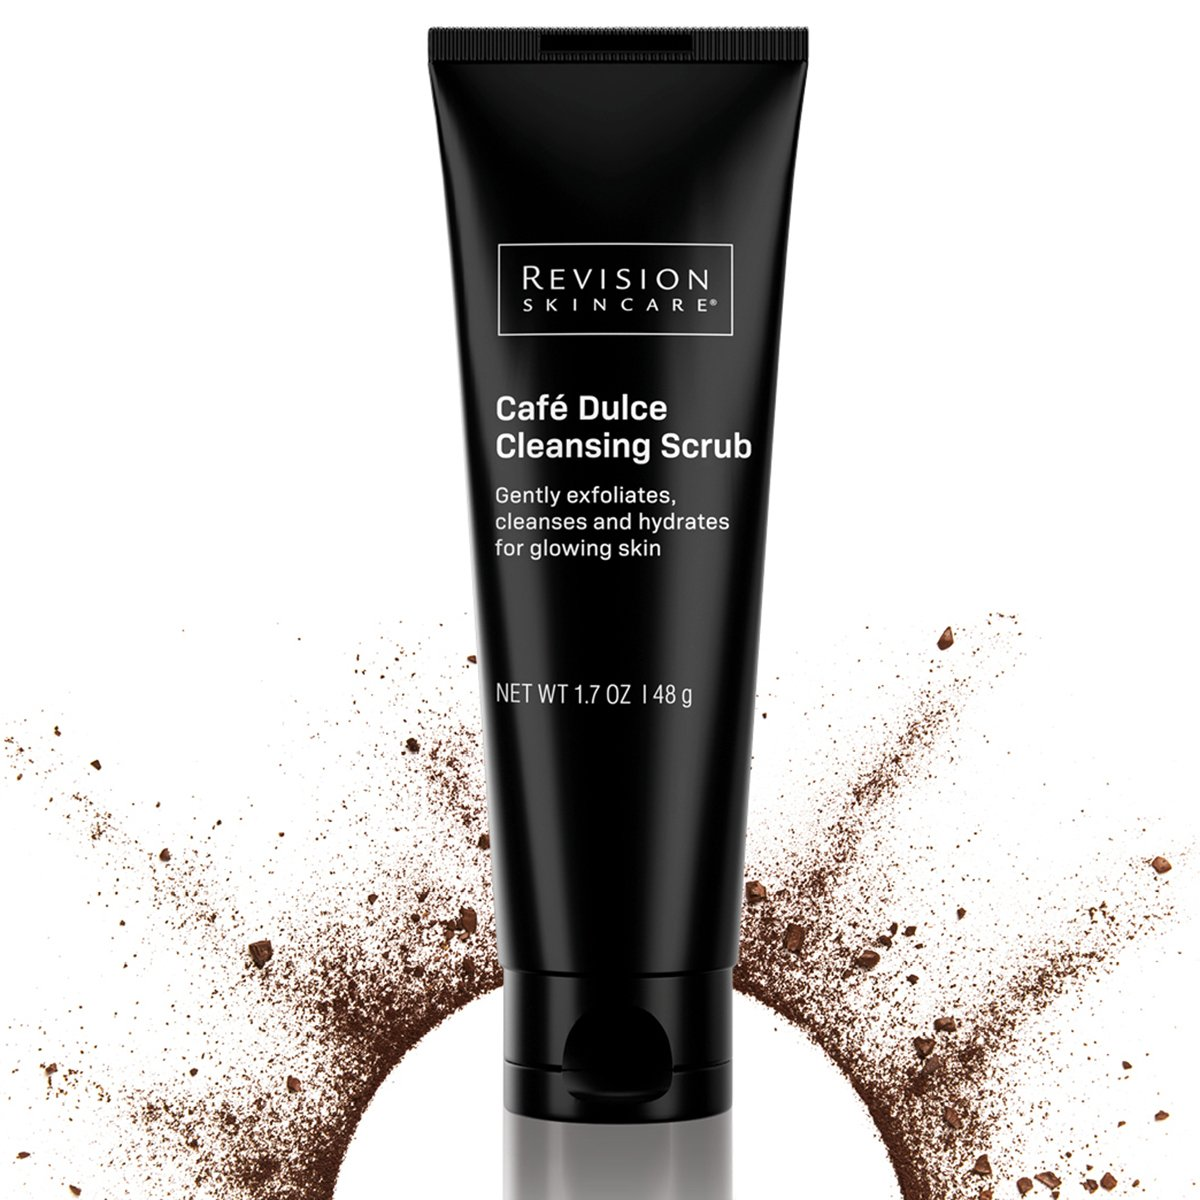 Revision Skincare Café Dulce Cleansing Scrub (Limited Edition!)